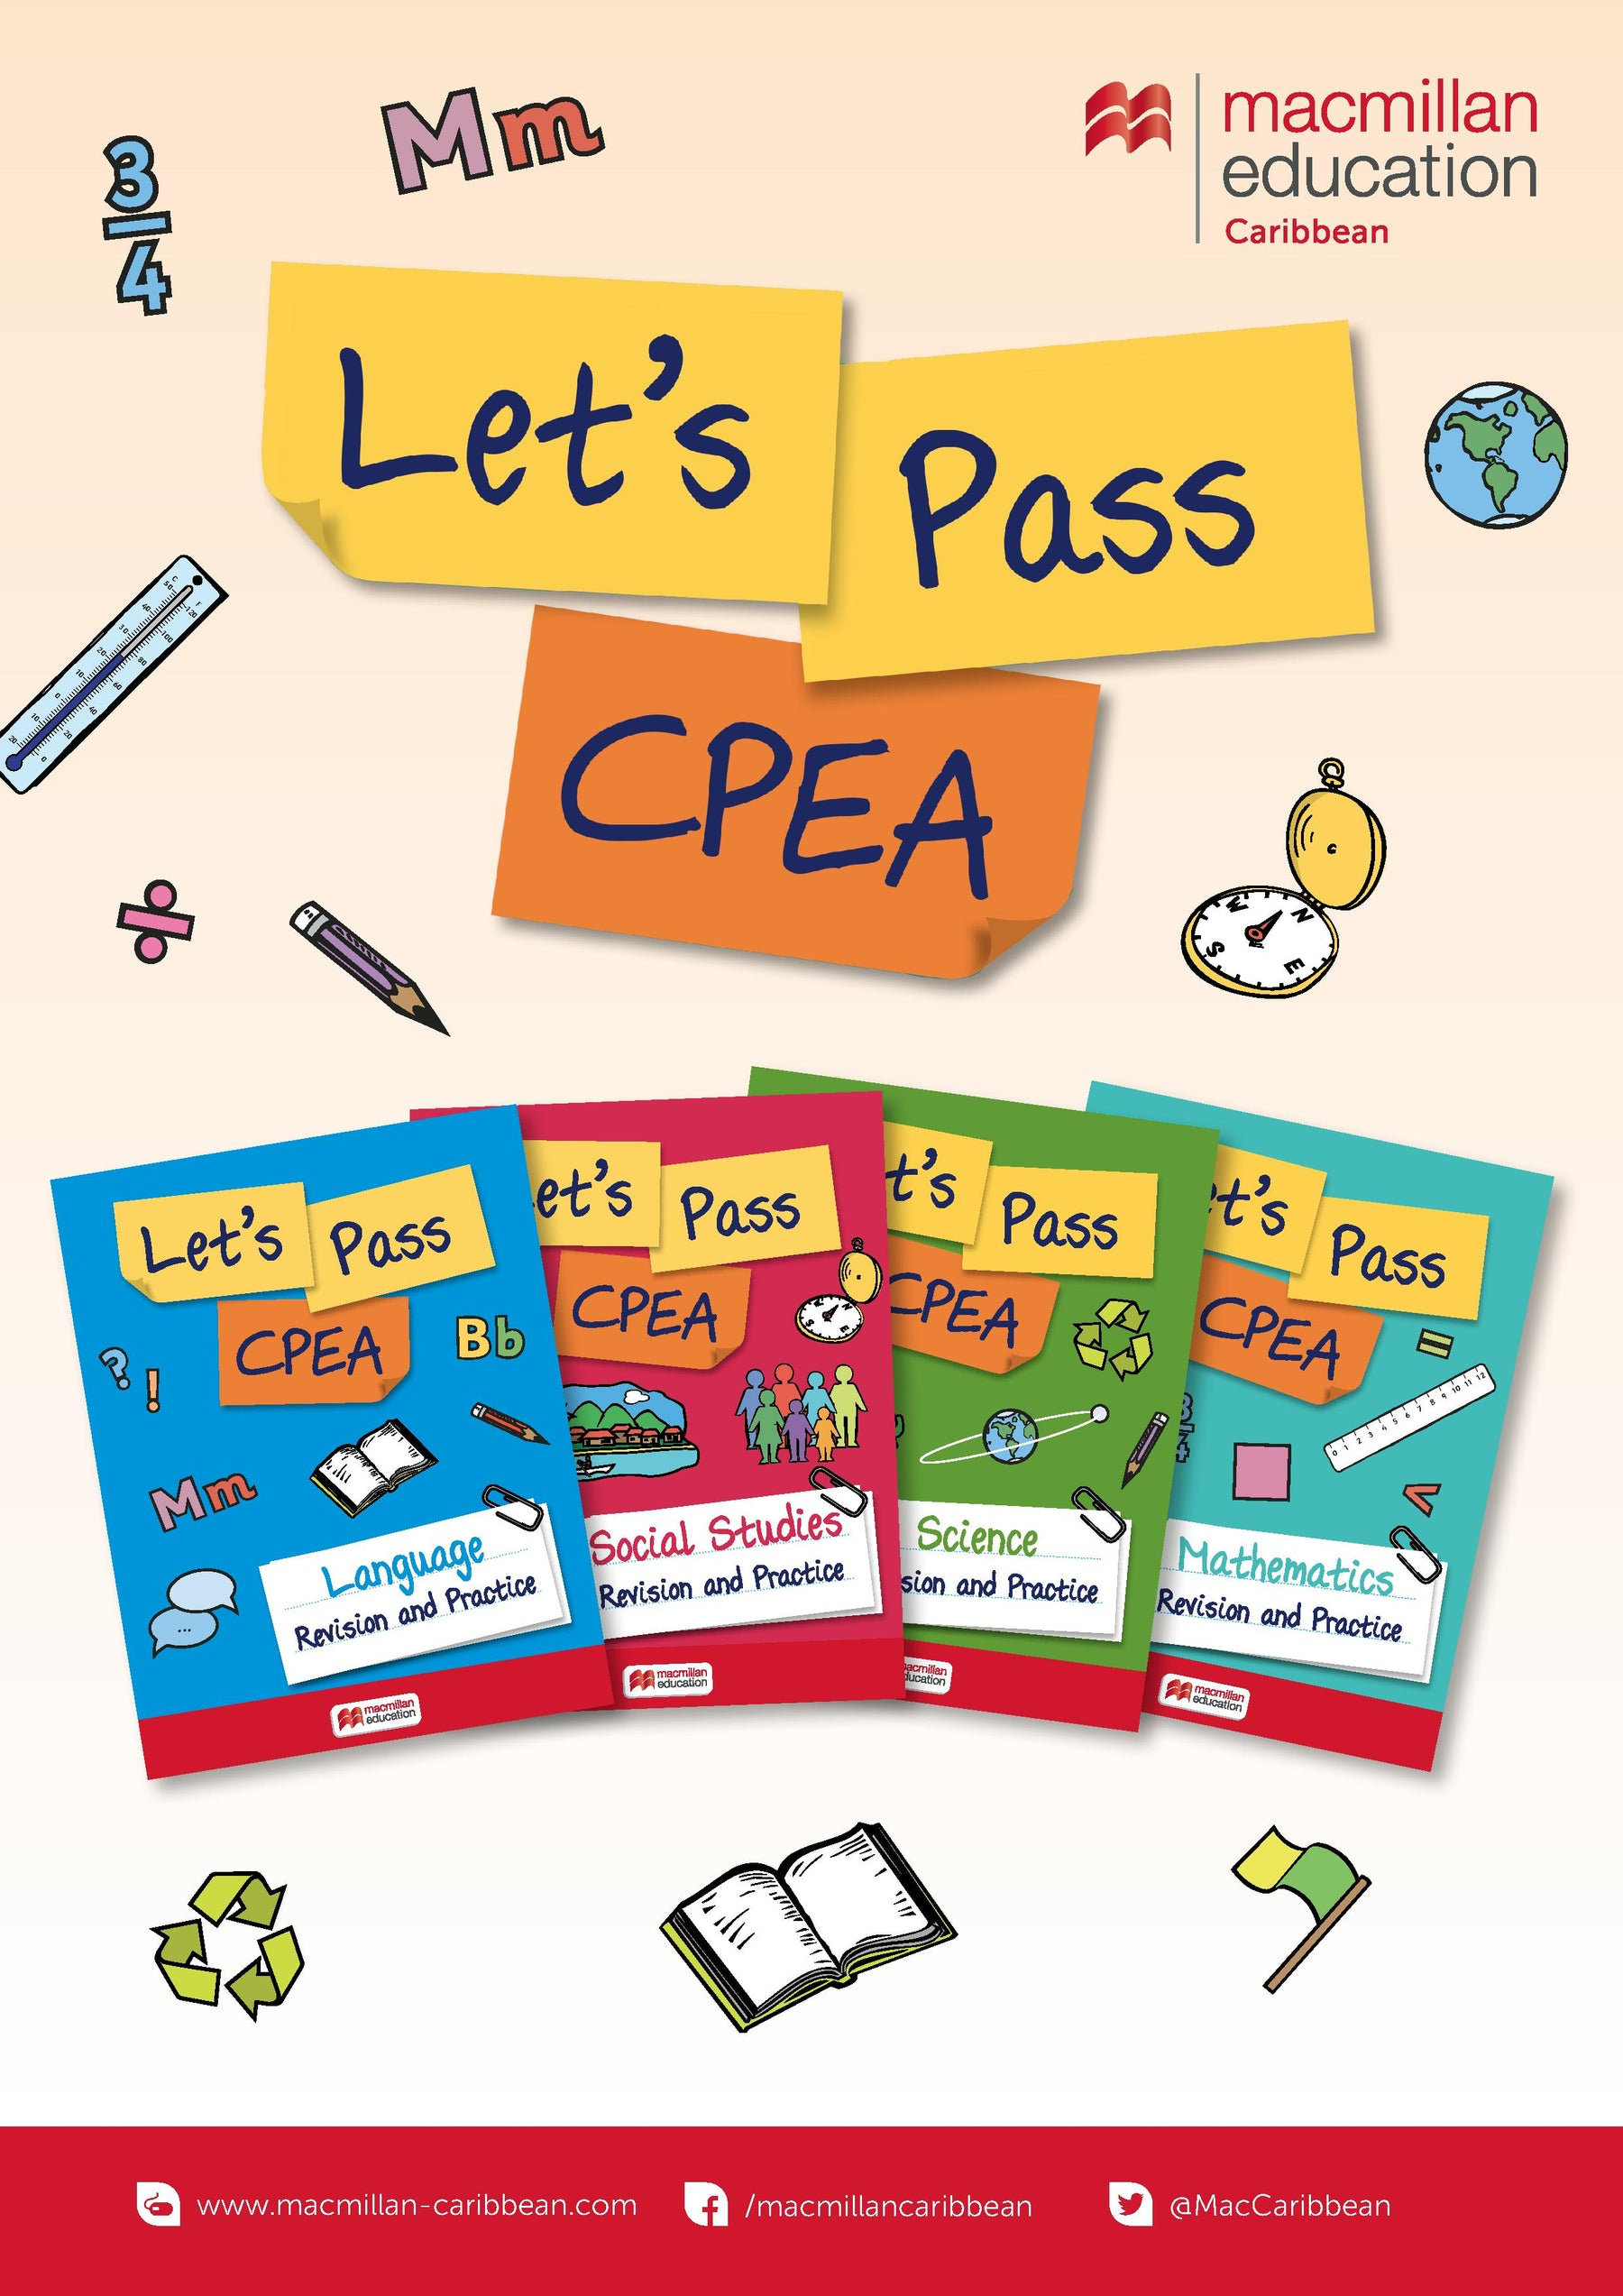 Introducing: Let's Pass CPEA!